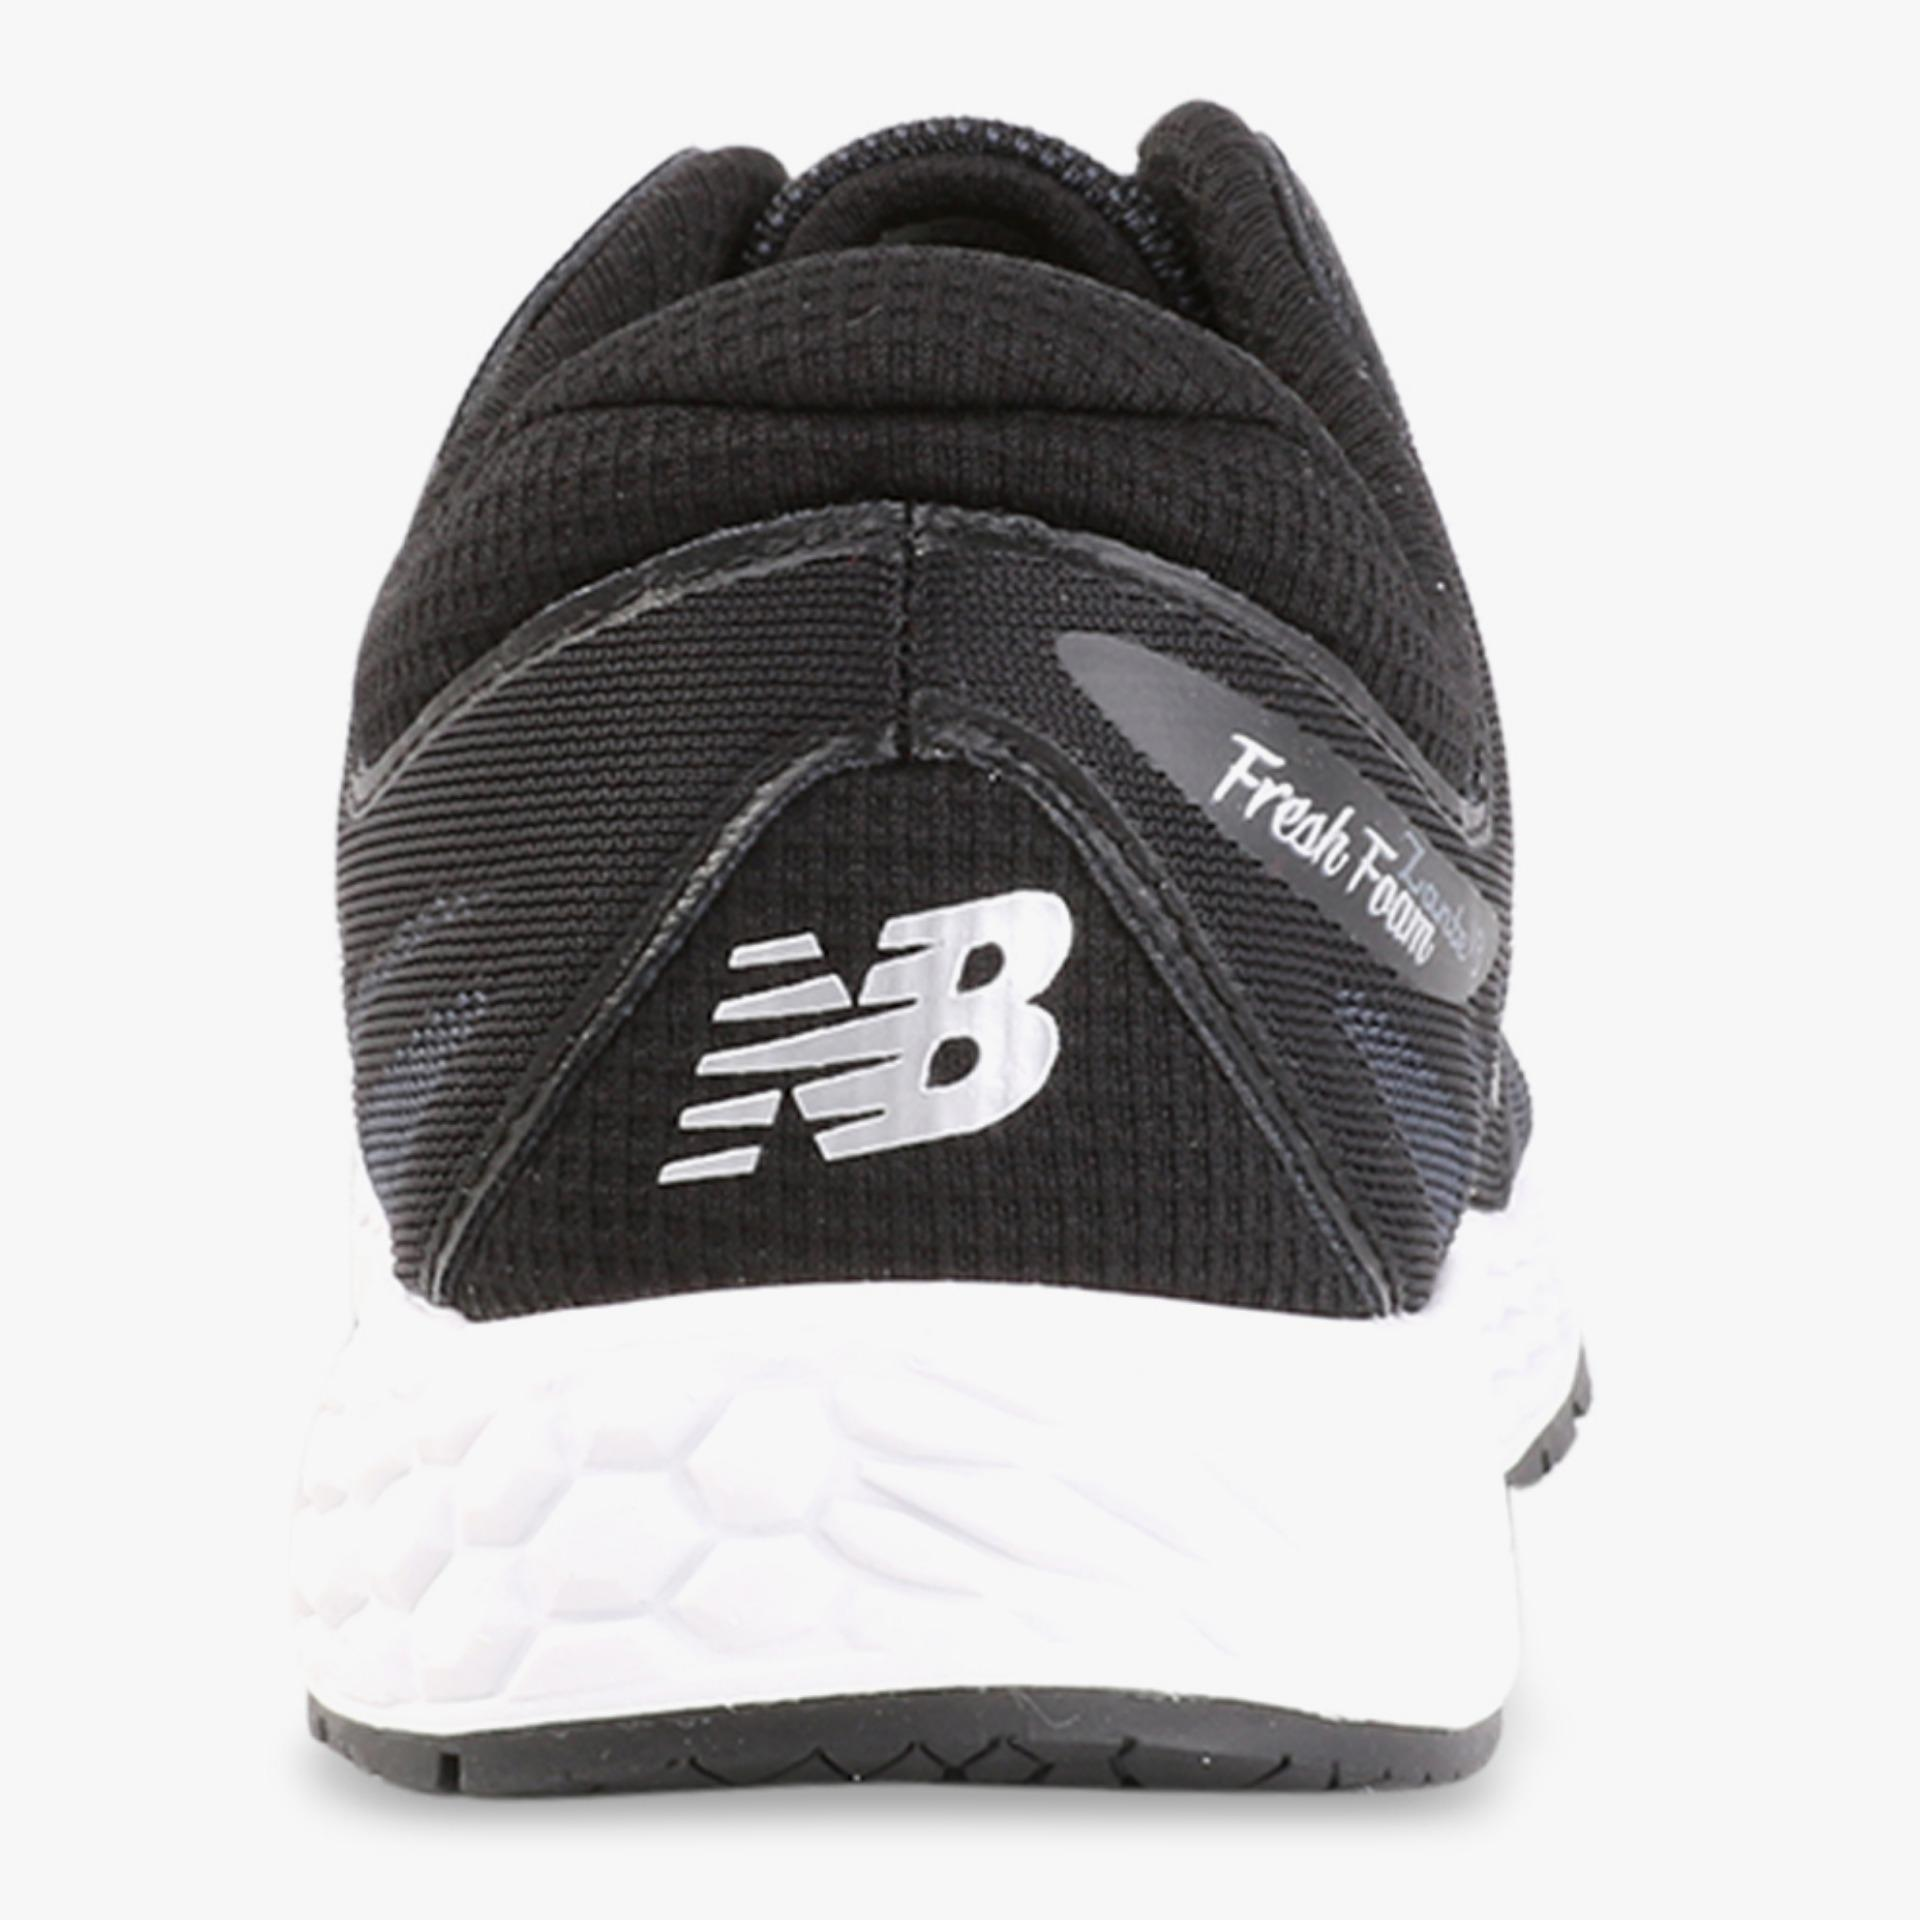 New Balance Flex Ride 530 Womens Running Shoes Hitam - Daftar Harga ... 49d8c2173b